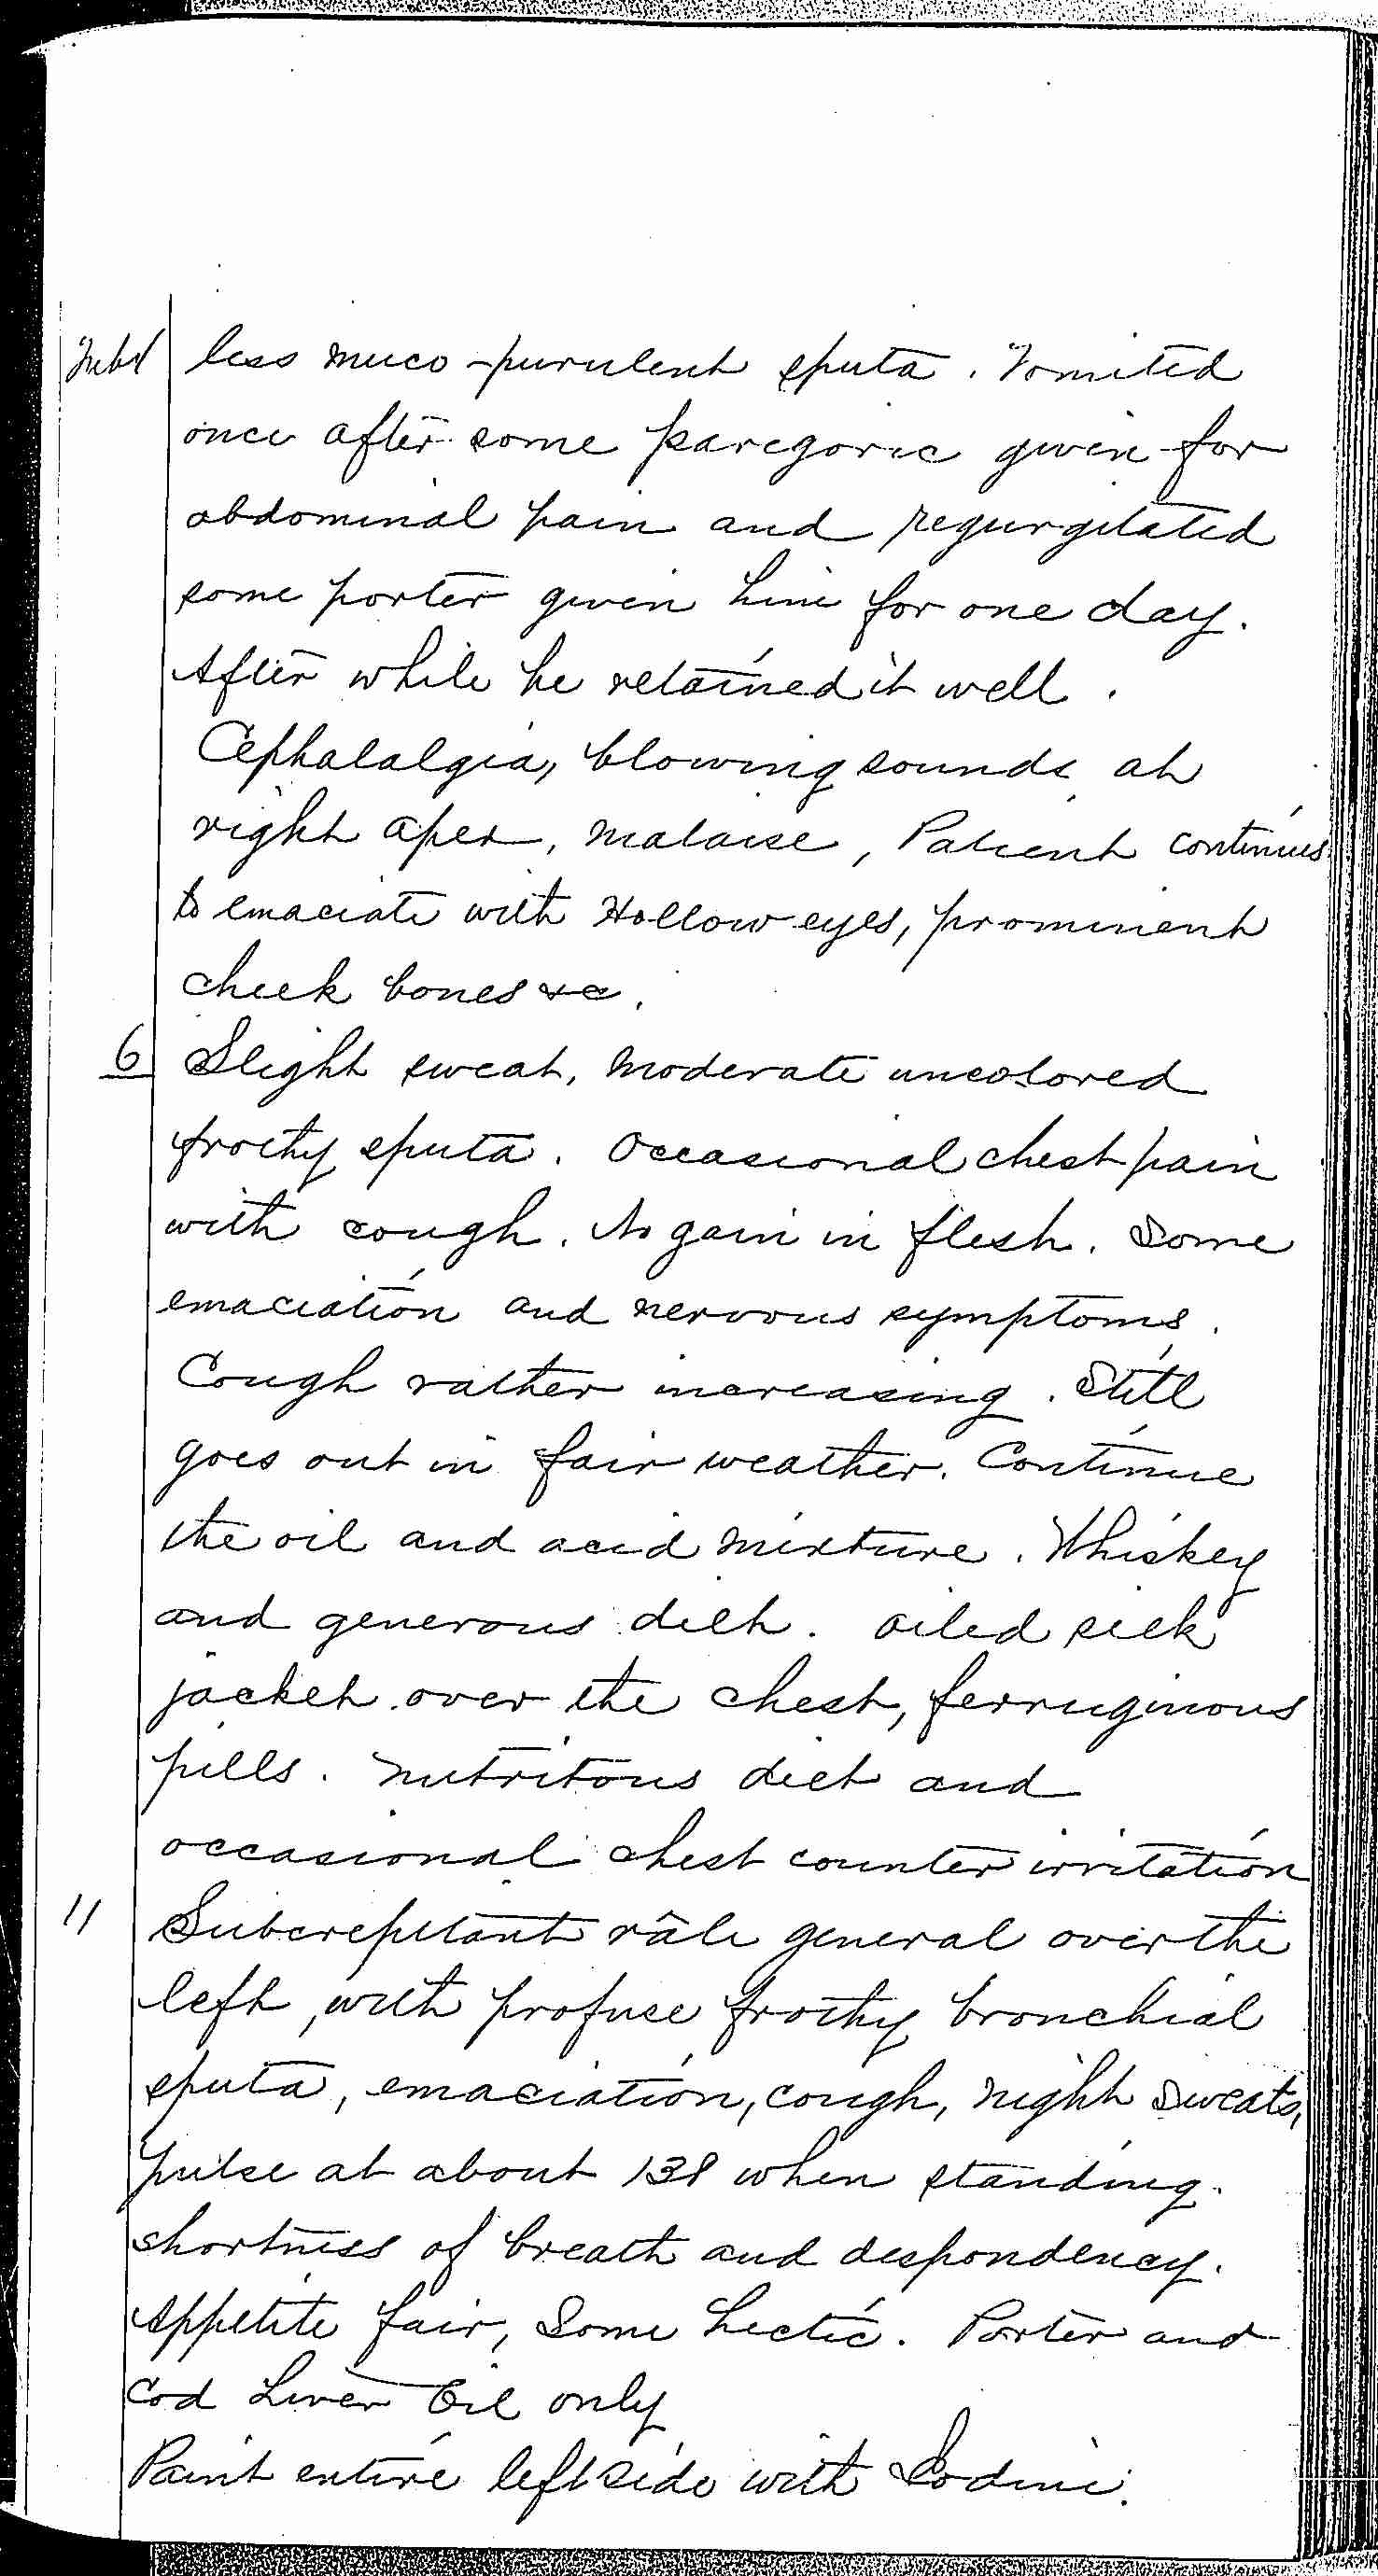 Entry for William Bathwell (page 7 of 13) in the log Hospital Tickets and Case Papers - Naval Hospital - Washington, D.C. - 1868-69